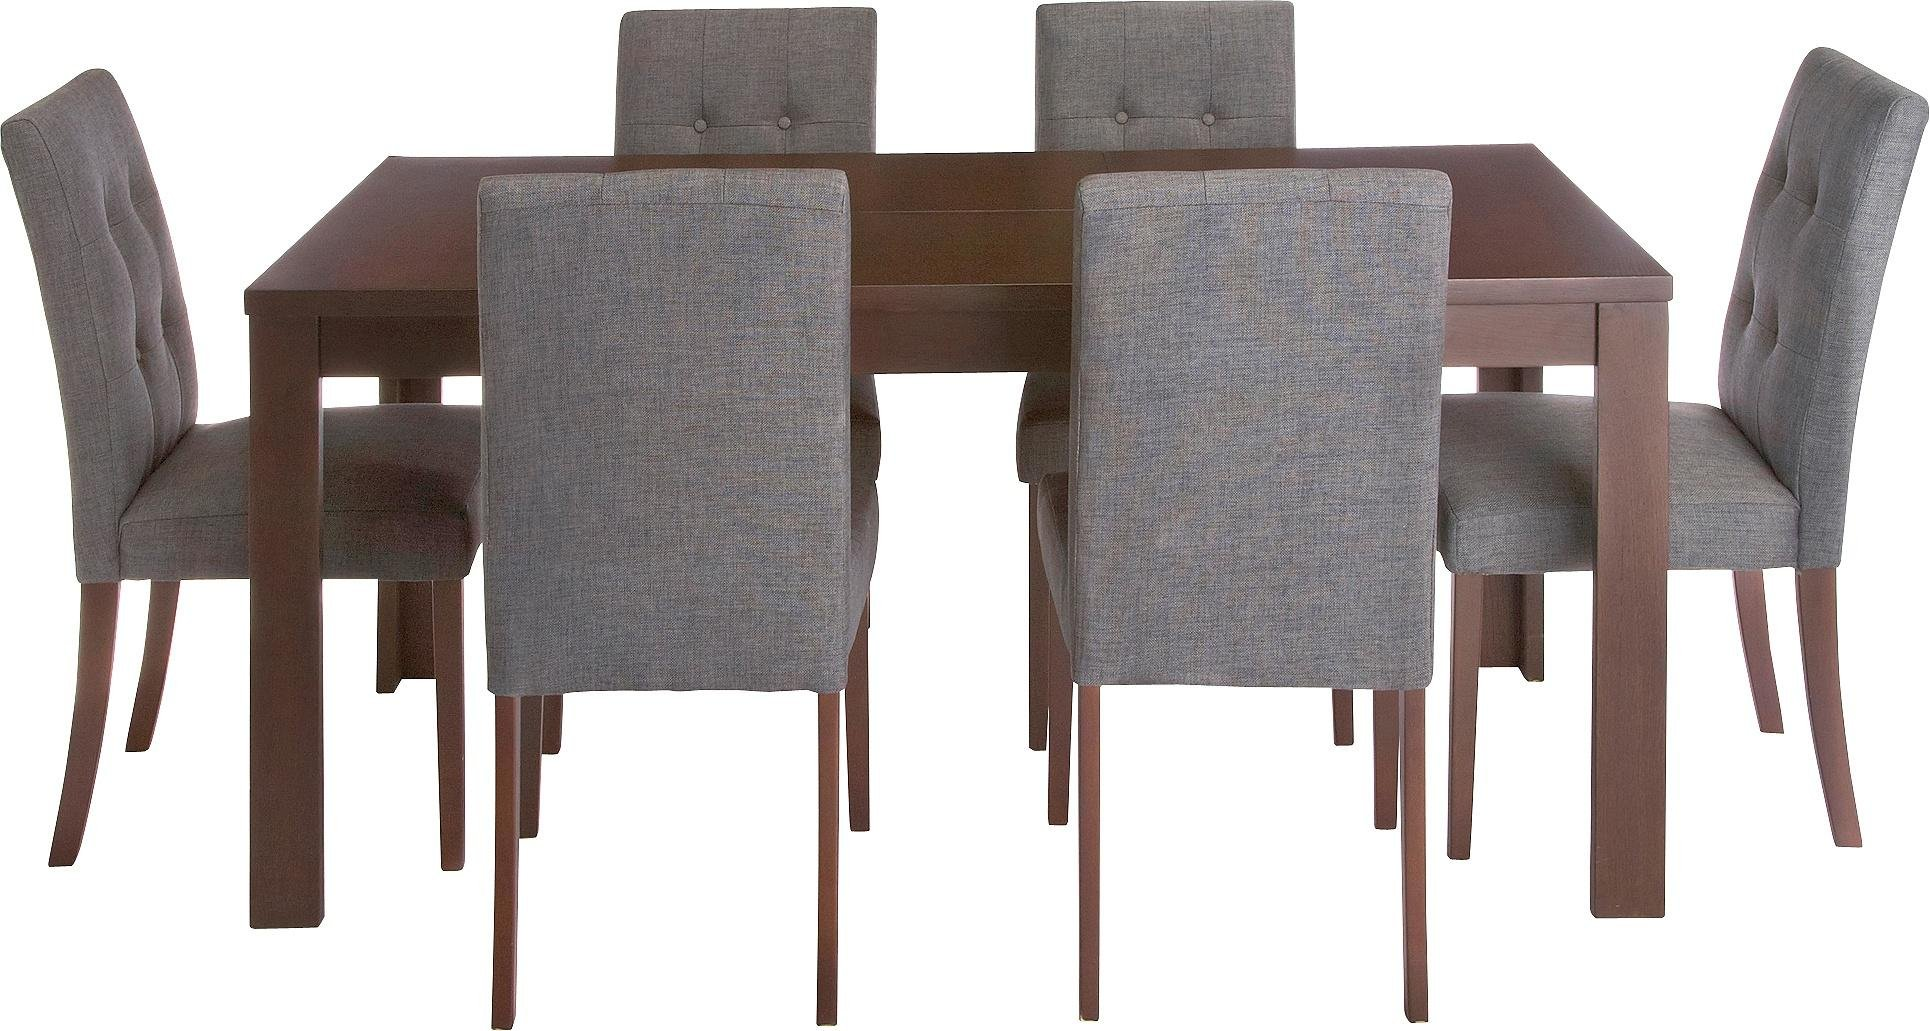 cosgrove extendable oak dining table and 6 charcoal chairs. click to zoom cosgrove extendable oak dining table and 6 charcoal chairs